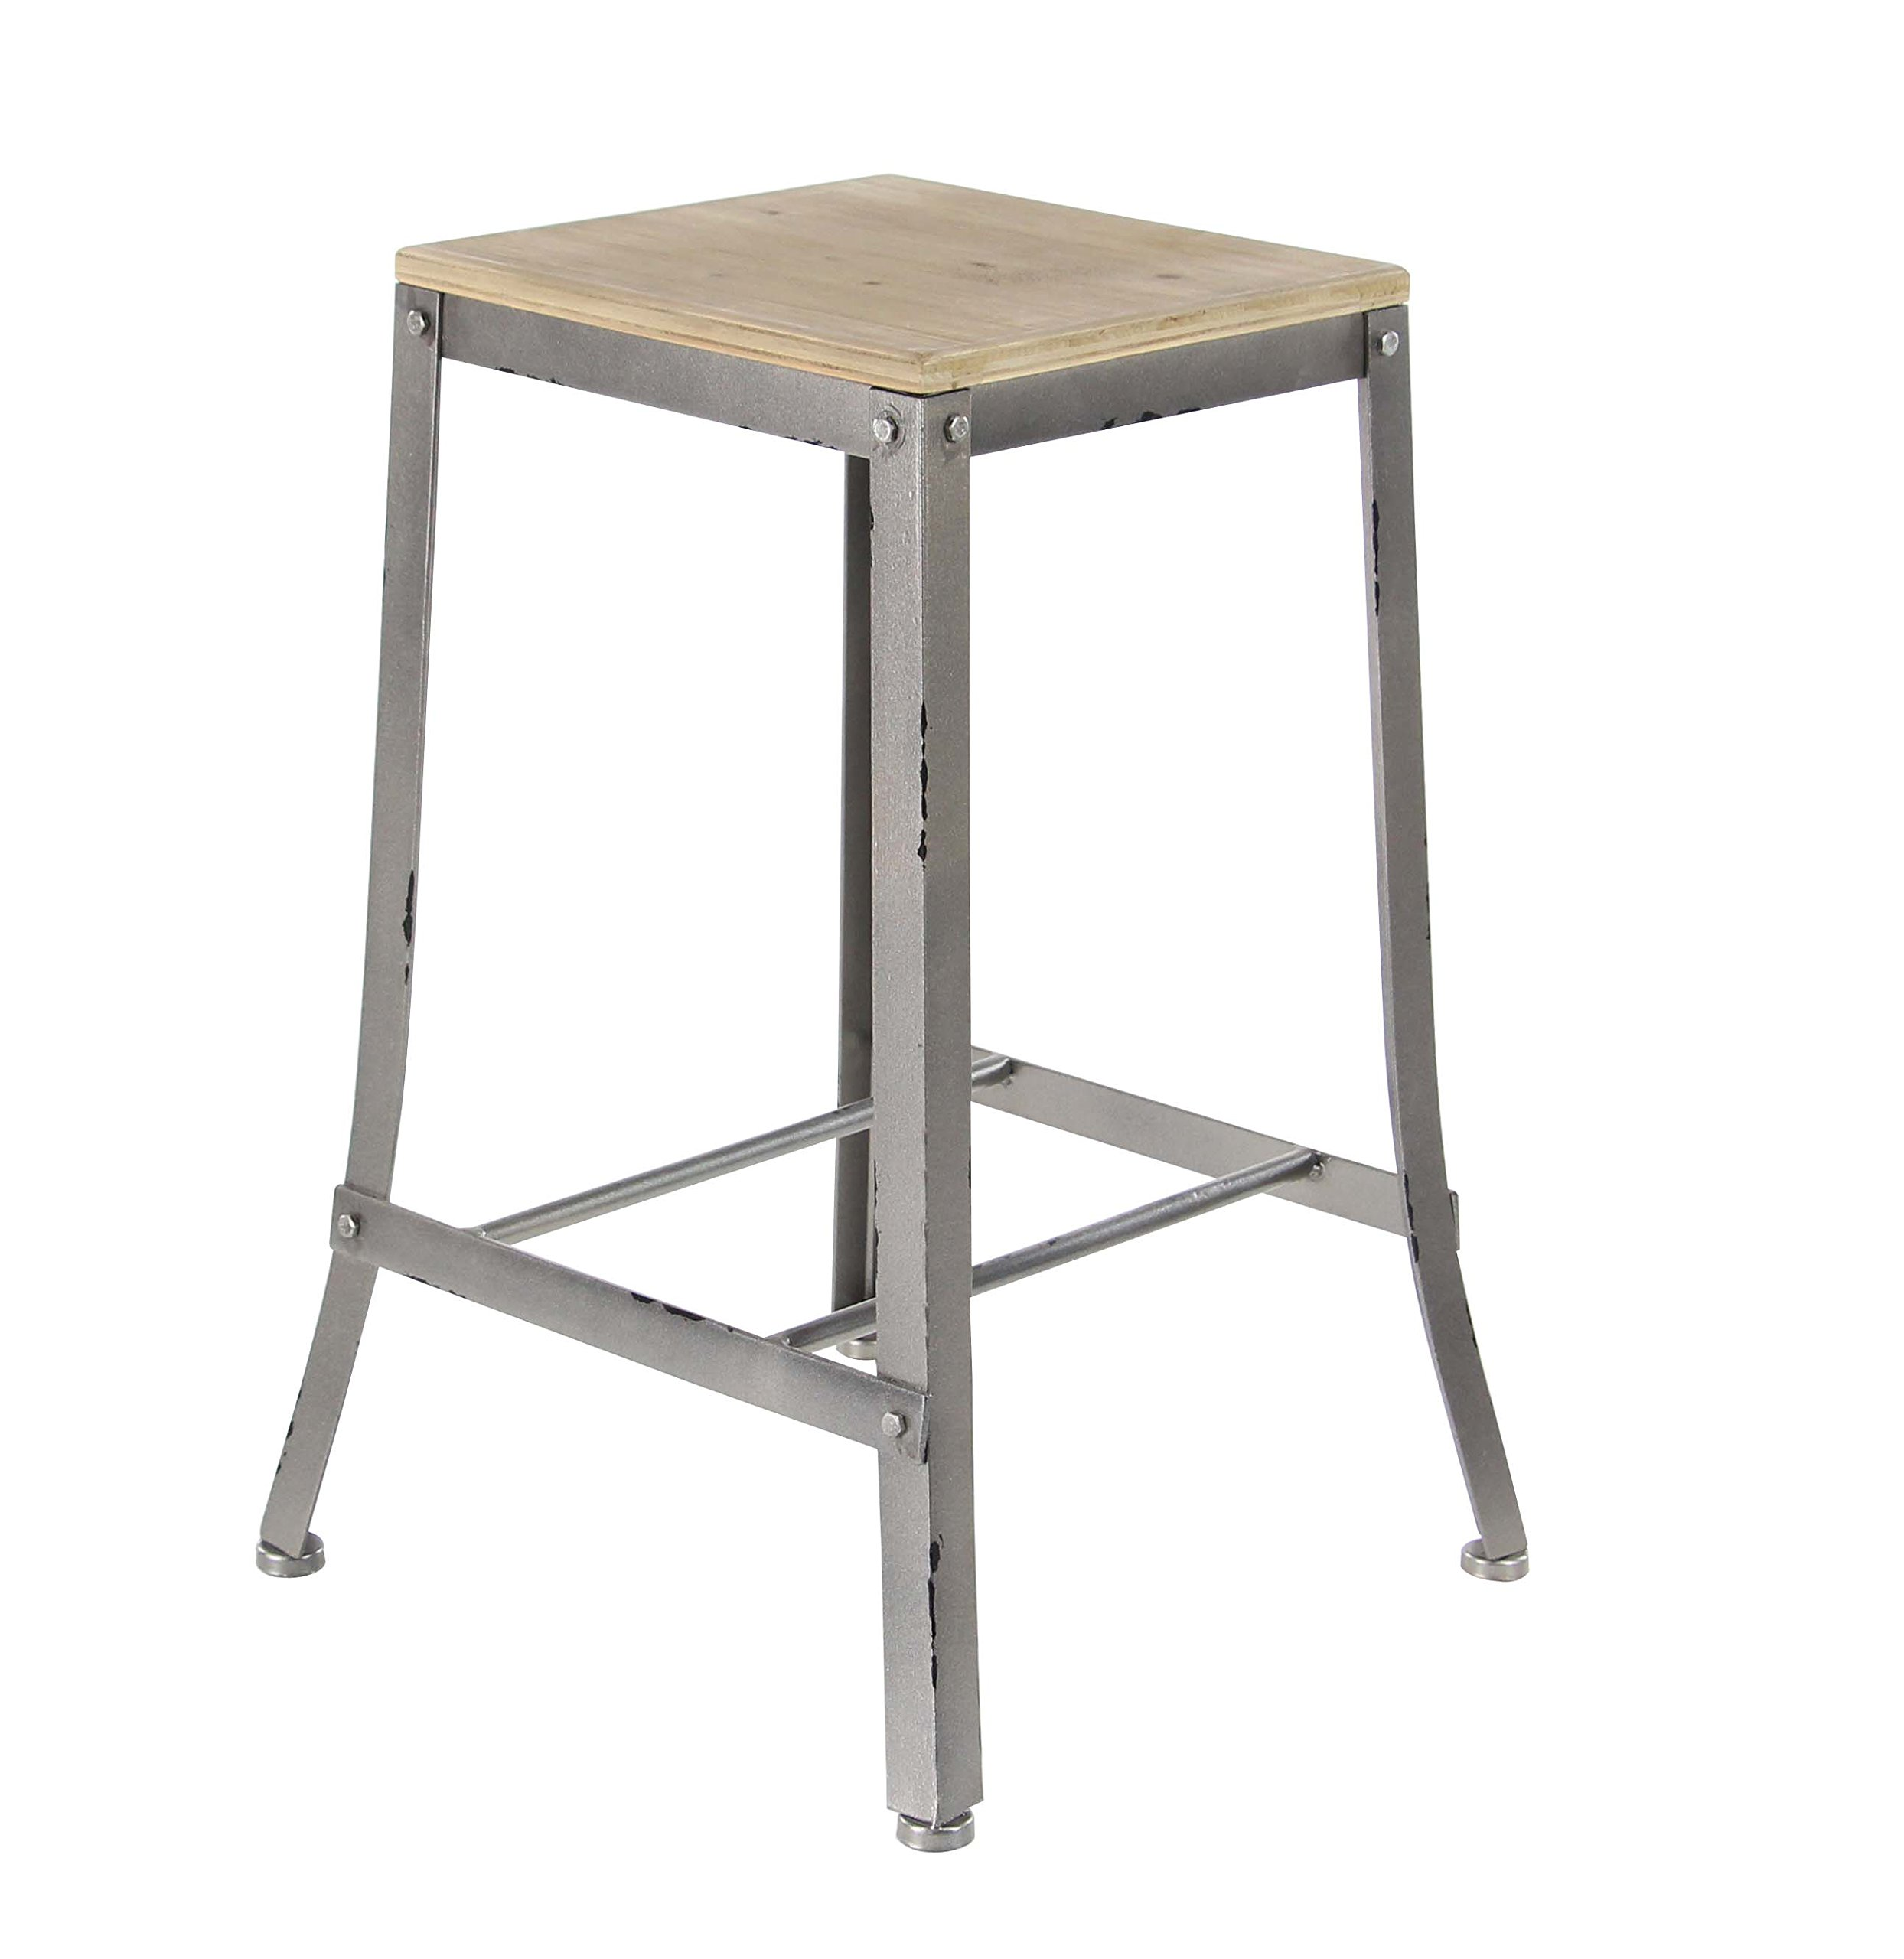 Deco 79 60193 Counter Stool, Brown/Gray